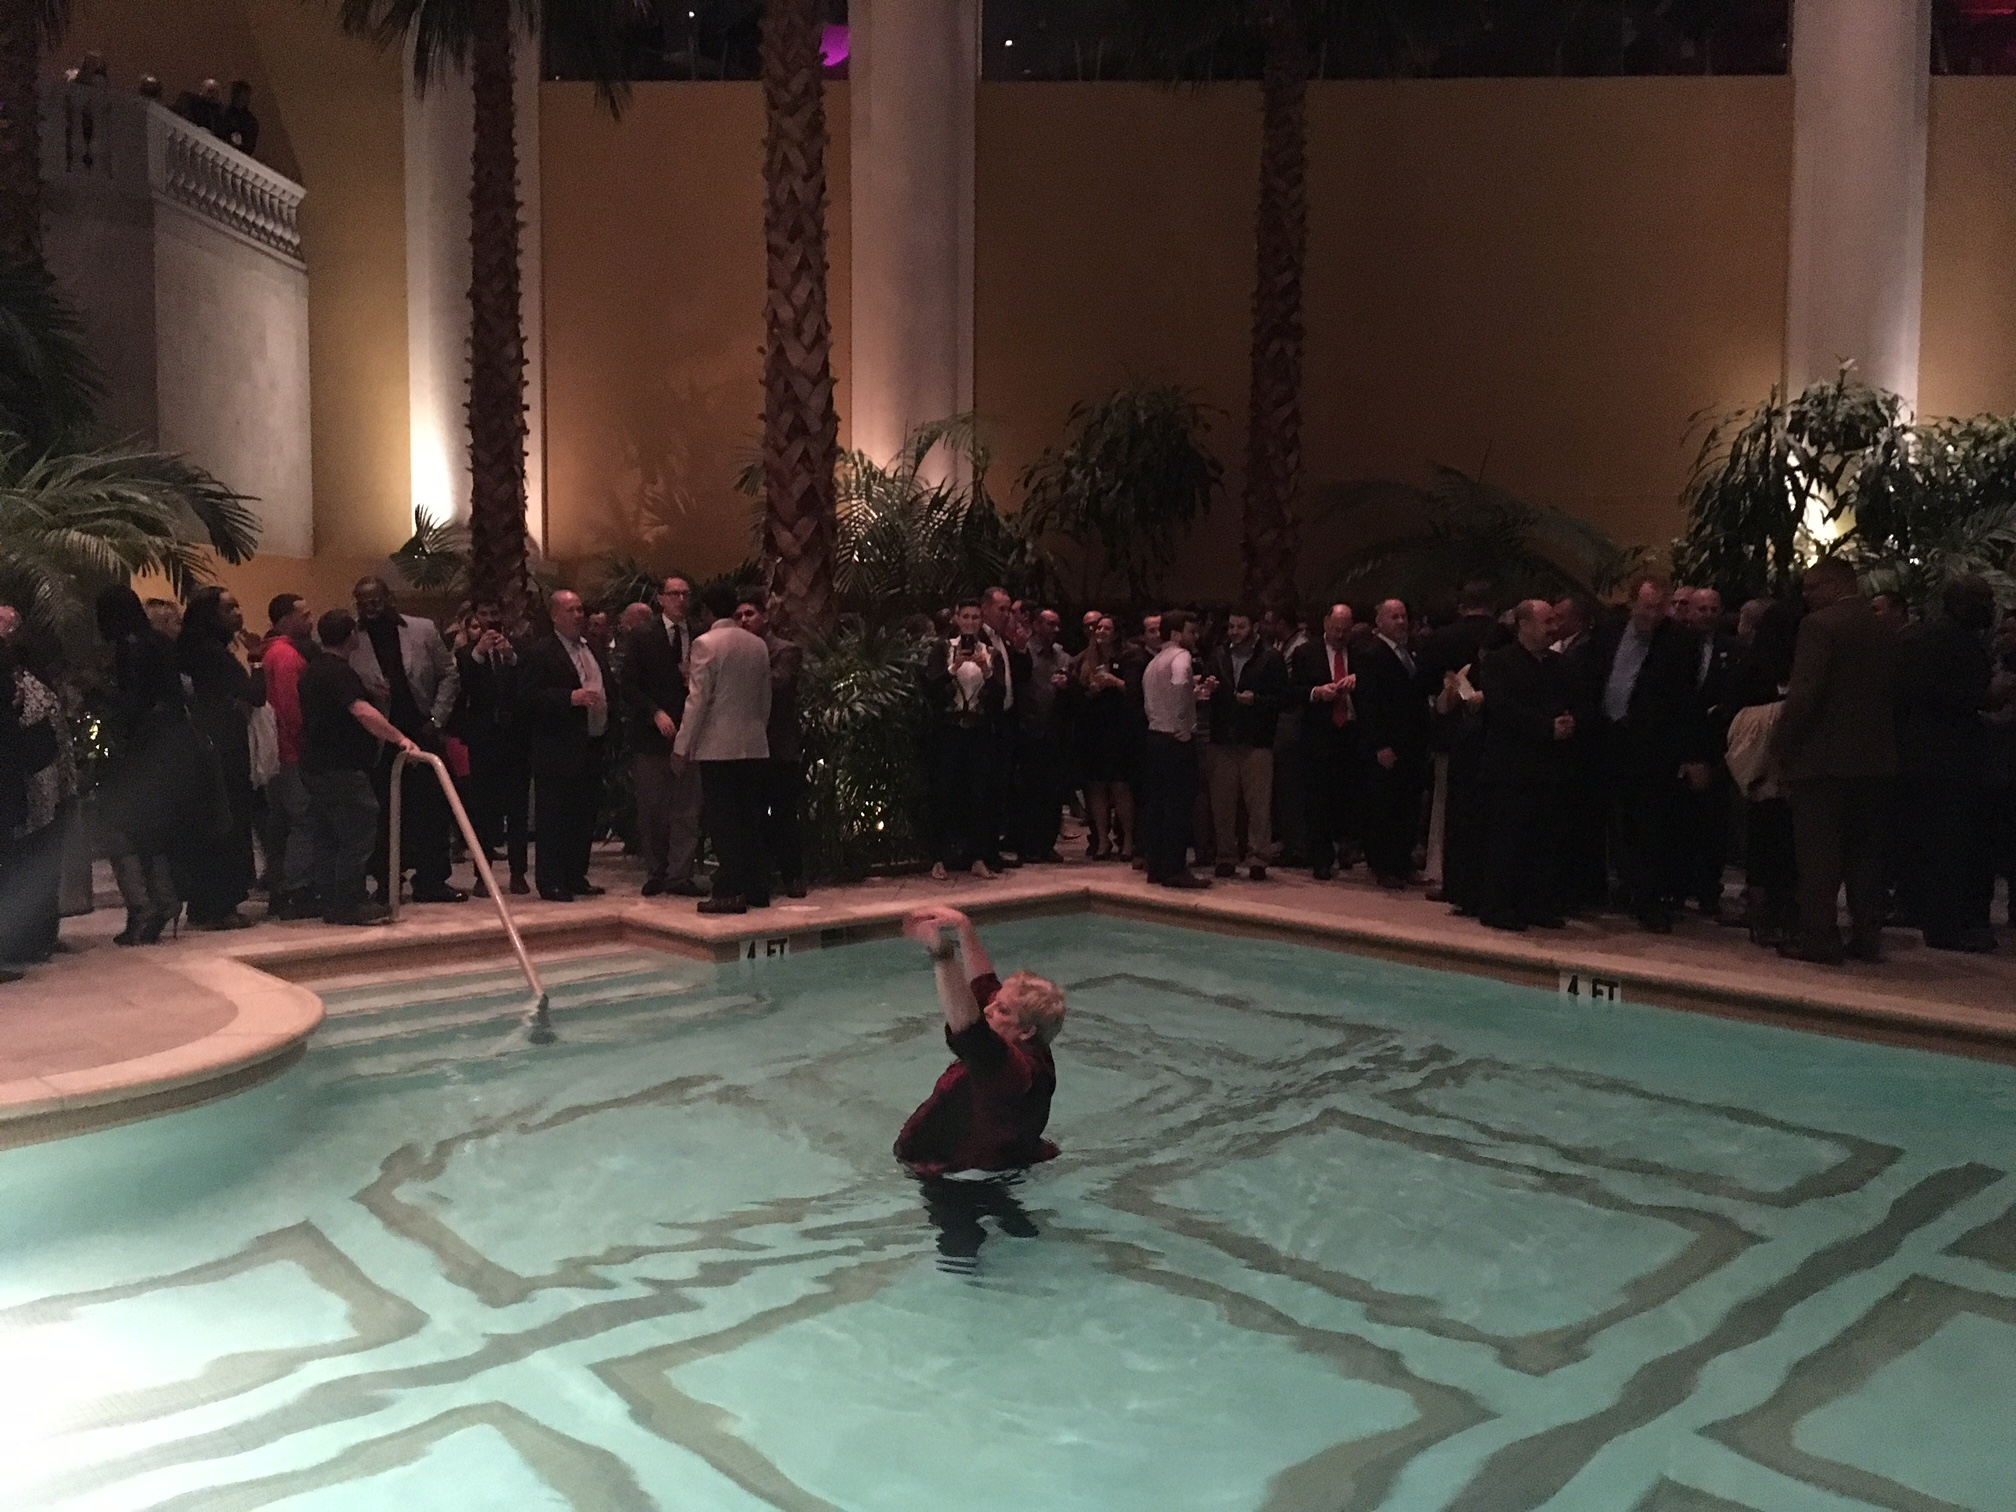 A guest takes a dip in the pool during Murphy's Borgata event.